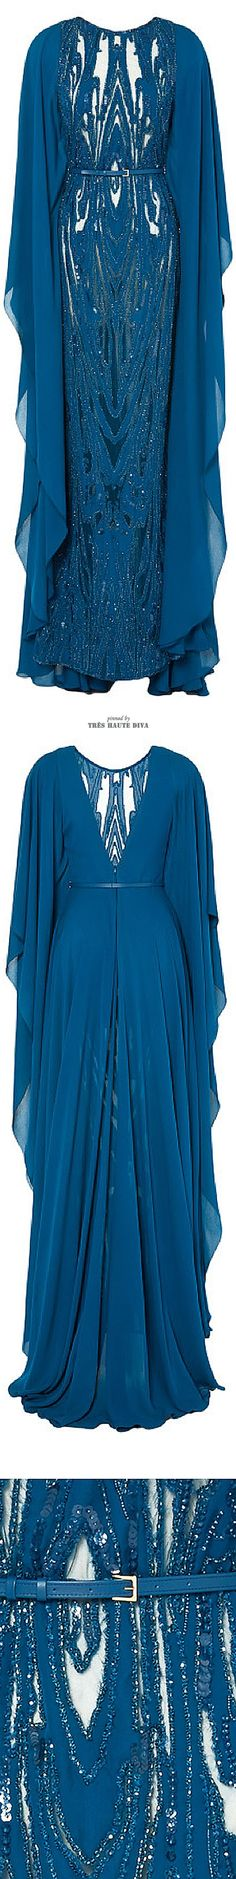 Ellie Saab Embroidered Blue Double Silk Georgette Butterfly Sleeve Gown ♔ SS I need this dress because I need it. Beautiful Gowns, Beautiful Outfits, Style Haute Couture, Muslim Dress, Gowns With Sleeves, Dream Dress, Hijab Fashion, Designer Dresses, Evening Dresses